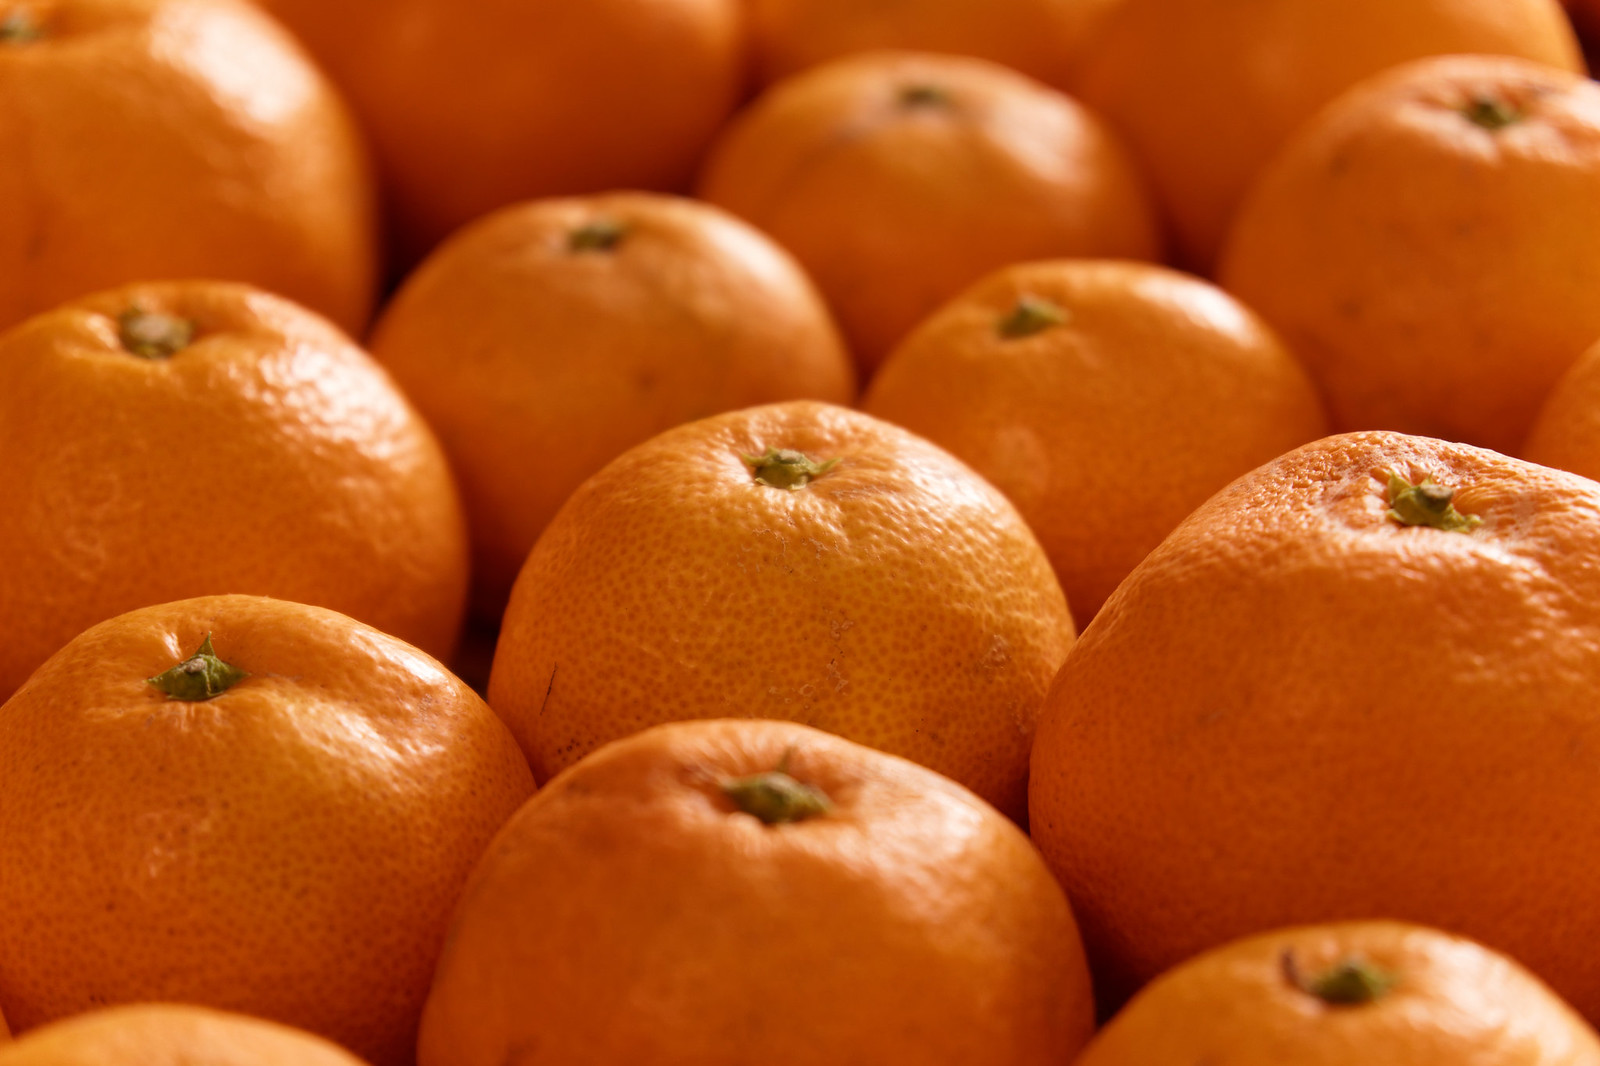 Japanese Mikan